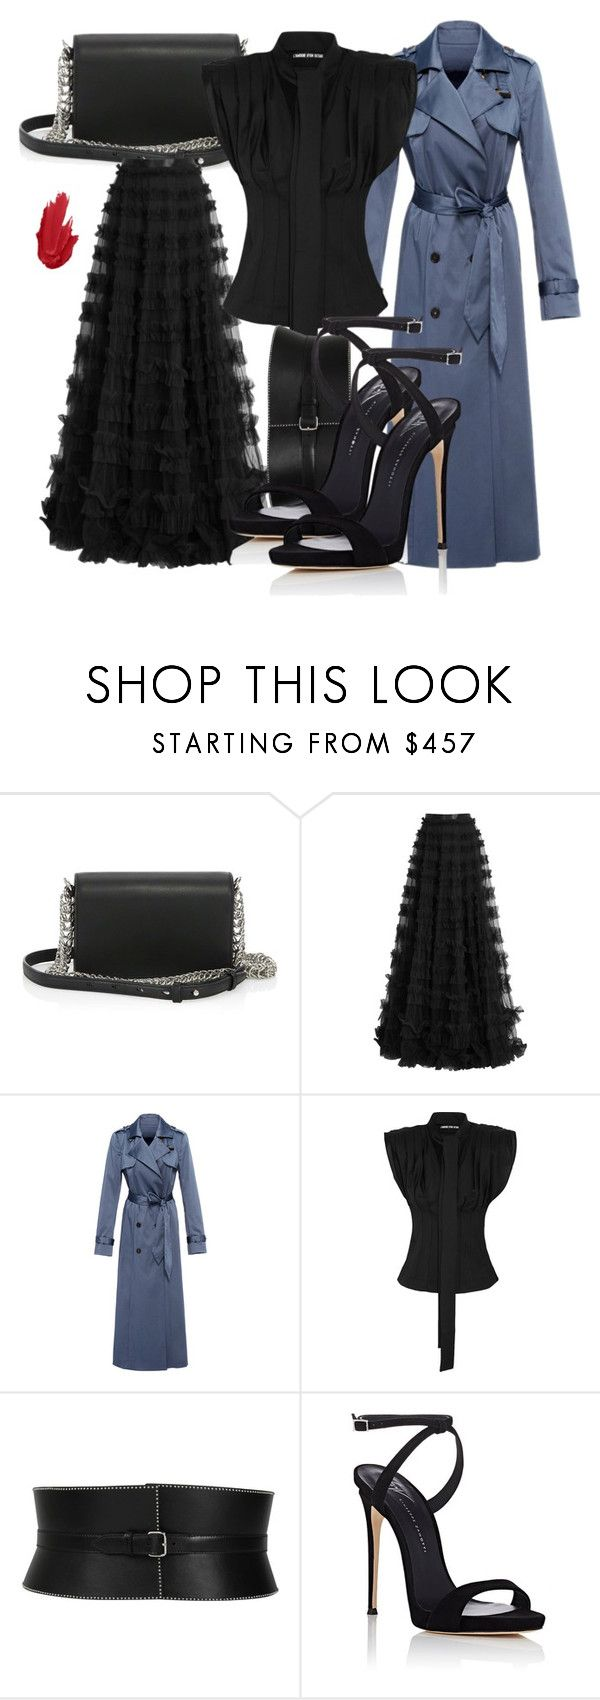 """Untitled #5434"" by beatrizvilar on Polyvore featuring Alexander Wang, Rachel Gilbert, Martin Grant, Jacquemus, Alaïa and Giuseppe Zanotti"